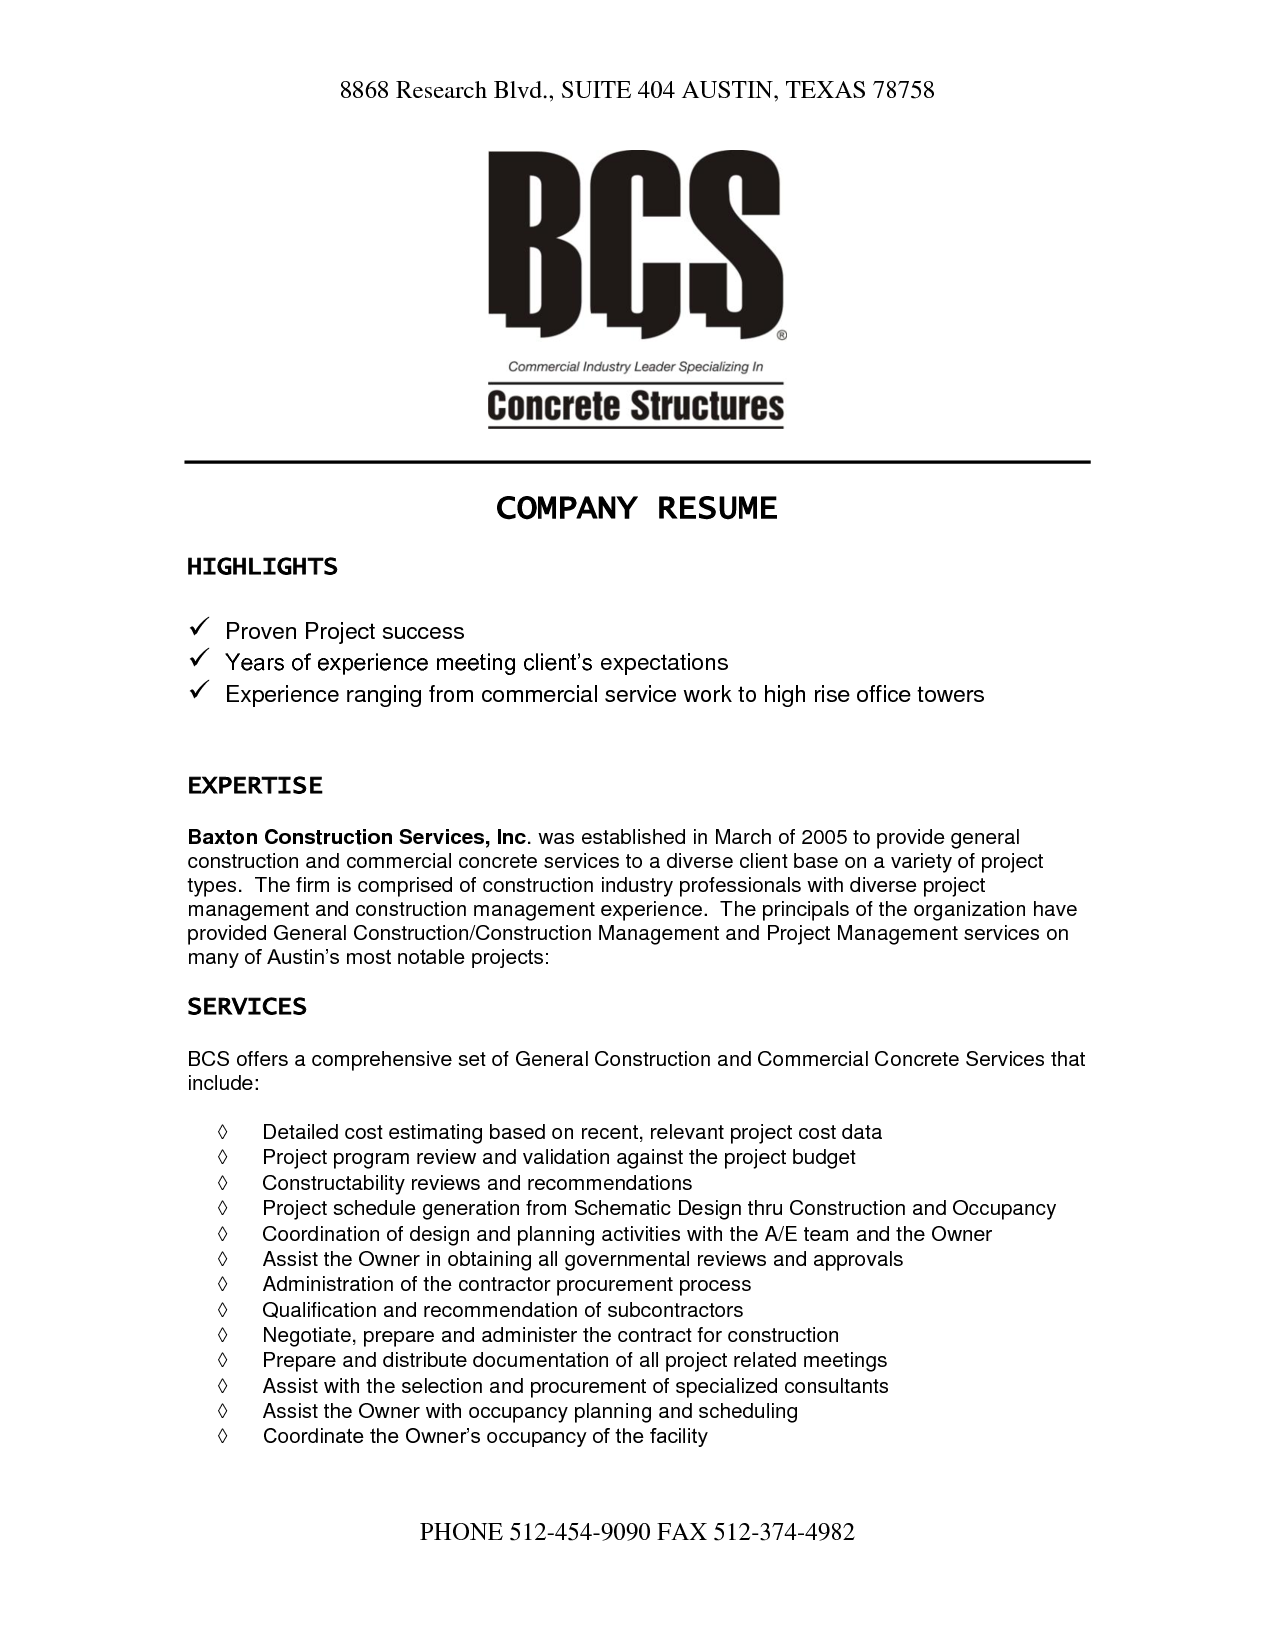 Construction Resume Templates Download Construction Company Resume Template Resume Resume